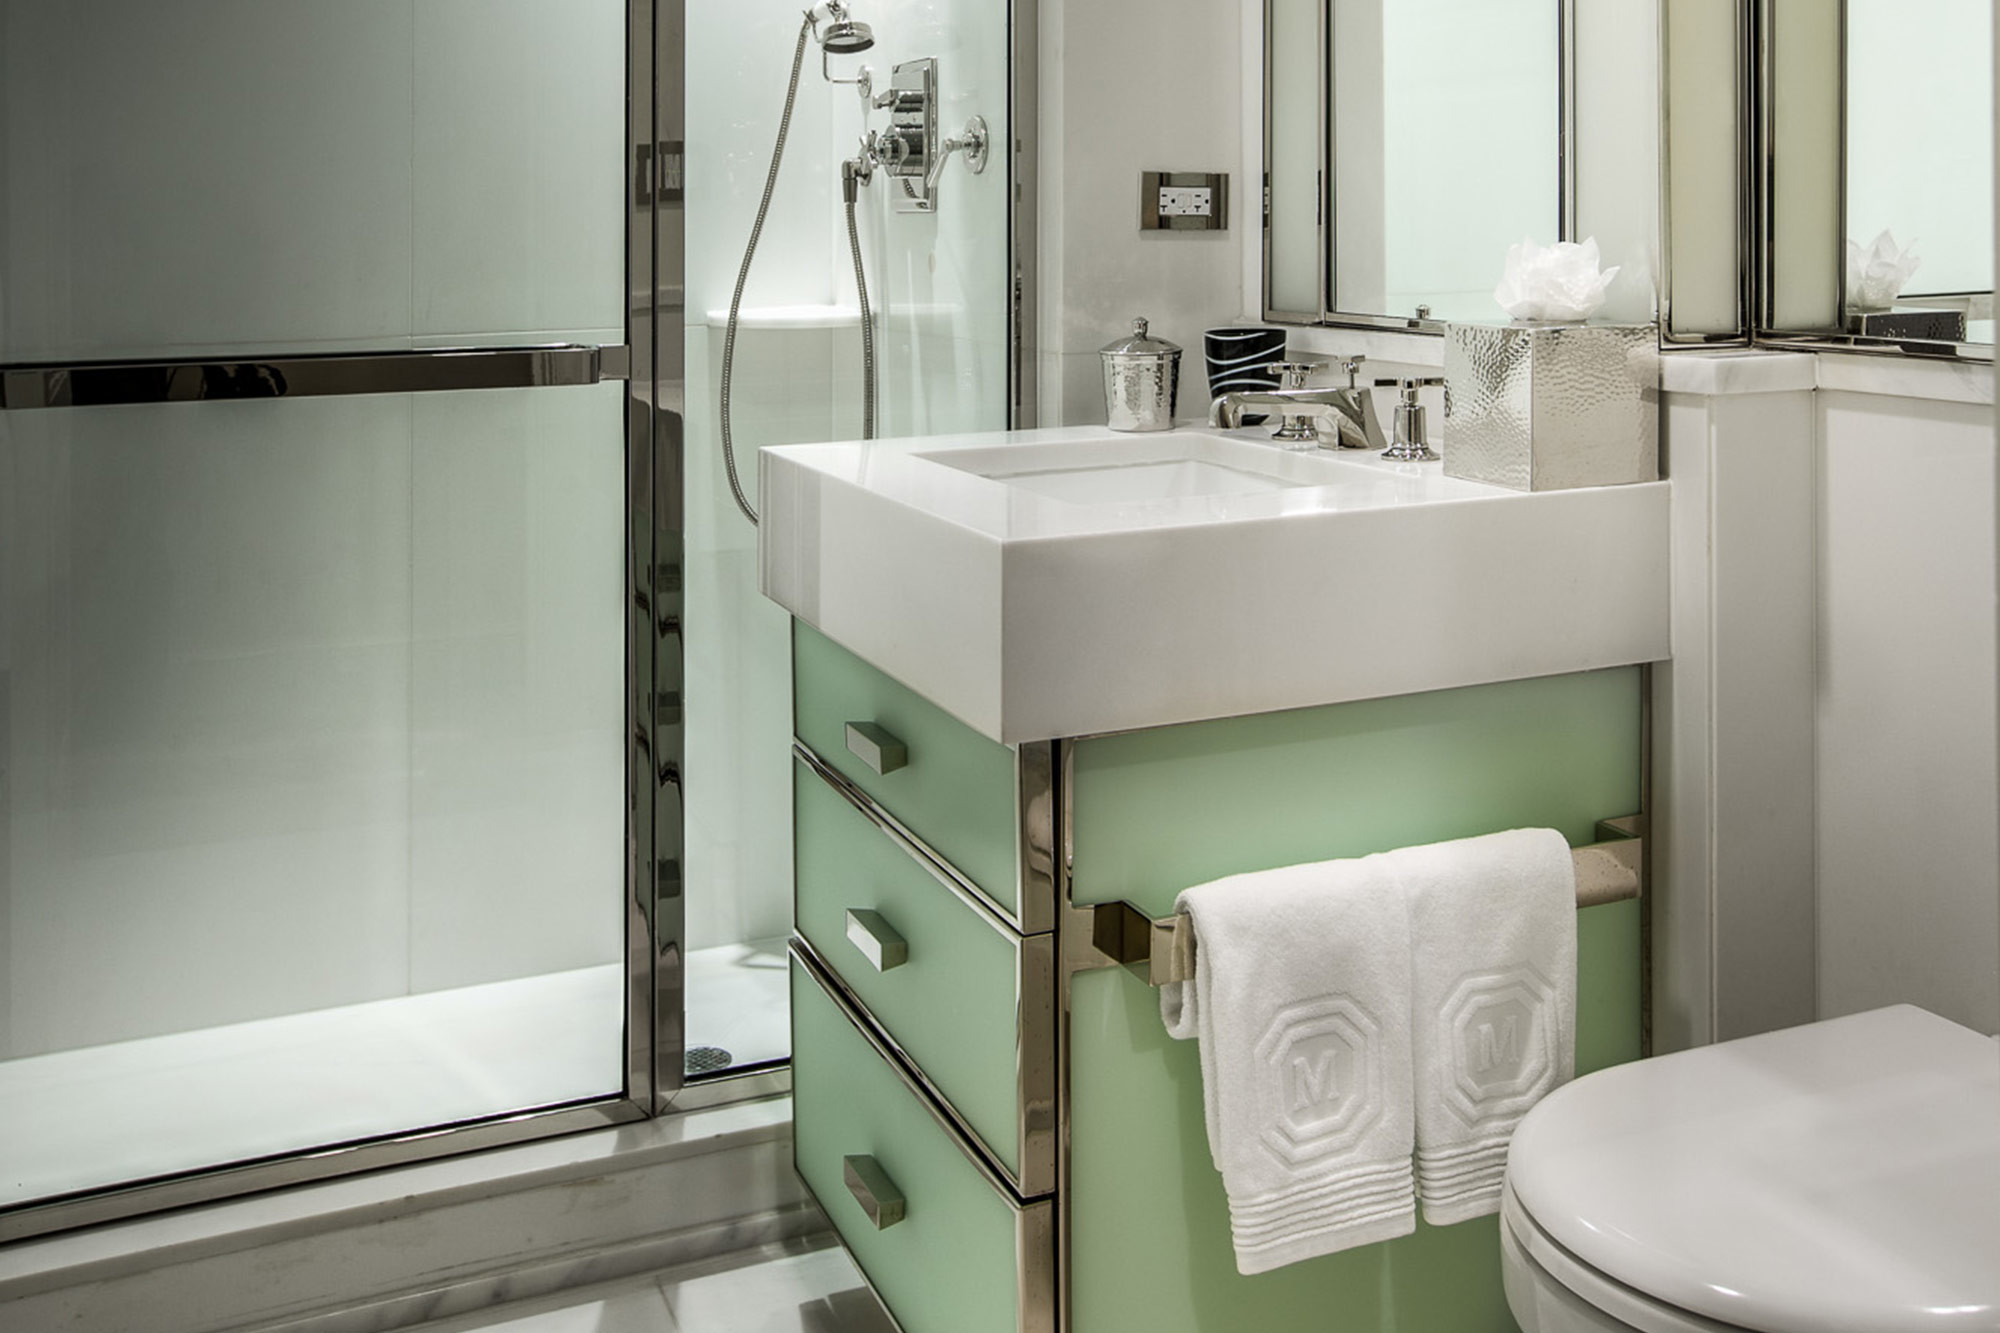 Bathroom Sinks New York City the mark two bedroom luxury hotel suite | the mark hotel | new